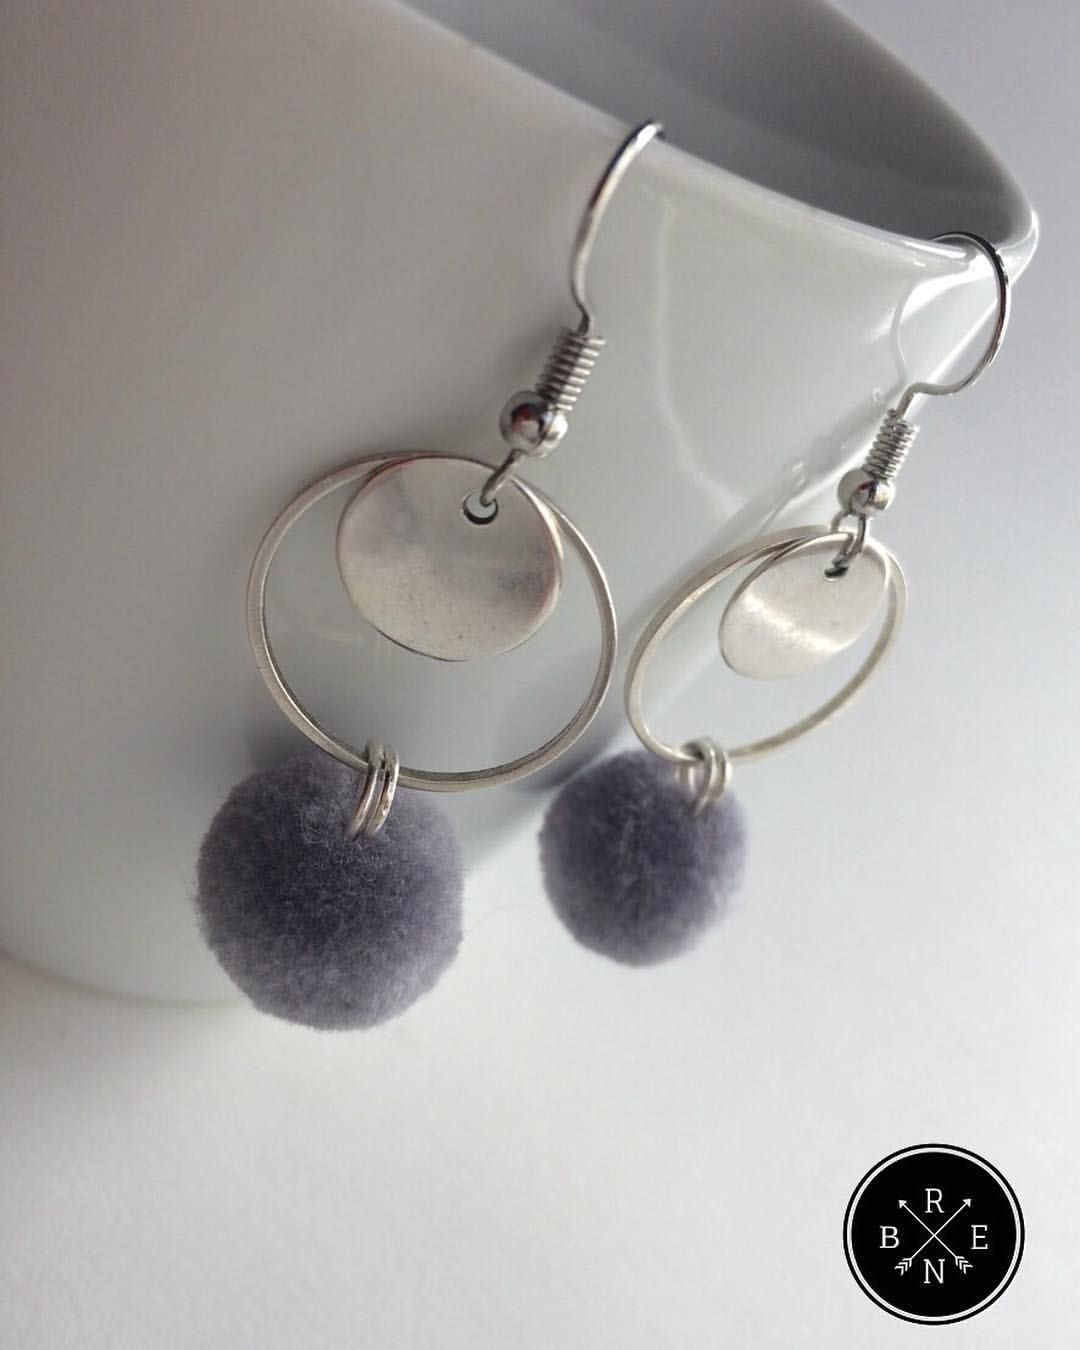 Earrings First Clothes Second Shop Now Brenjewelry Bren Jewelry Earring Style Fashion Woman Girl Jewell Jewelry Inspiration Jewelry Design Jewelry